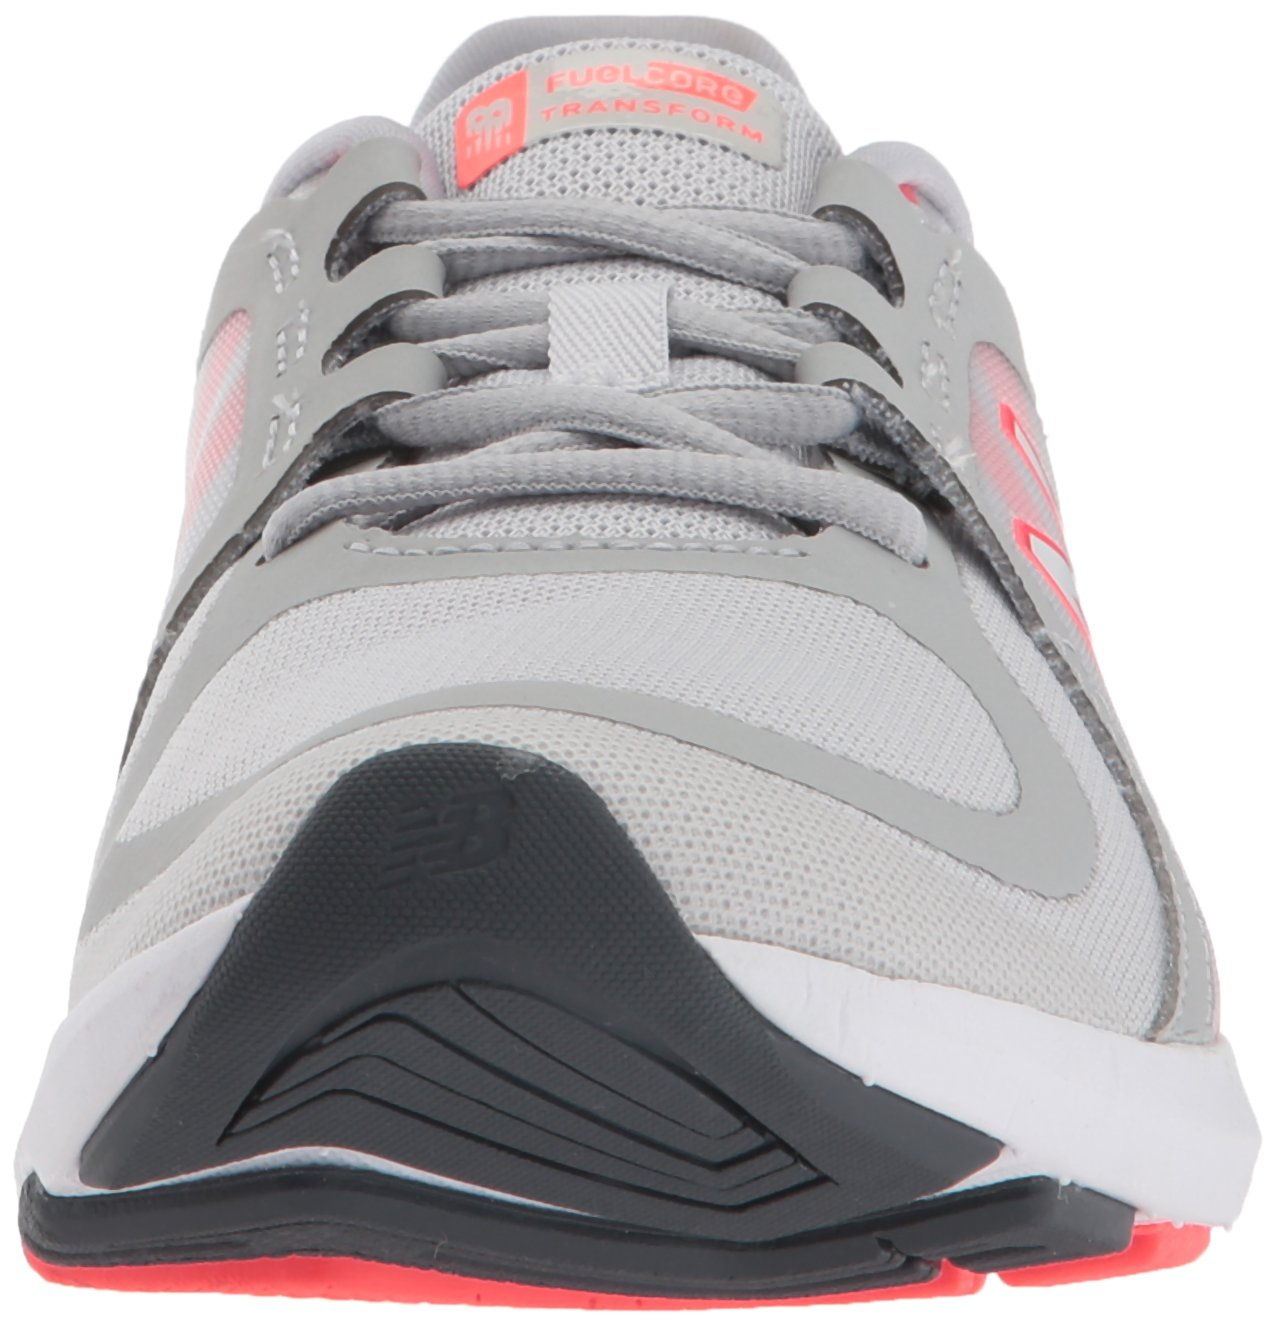 New B06XXDCF54 Balance Women's 77V2 Cross-Trainer-Shoes B06XXDCF54 New 5 B(M) US|Artic Fox/Silver Mink 4201e8